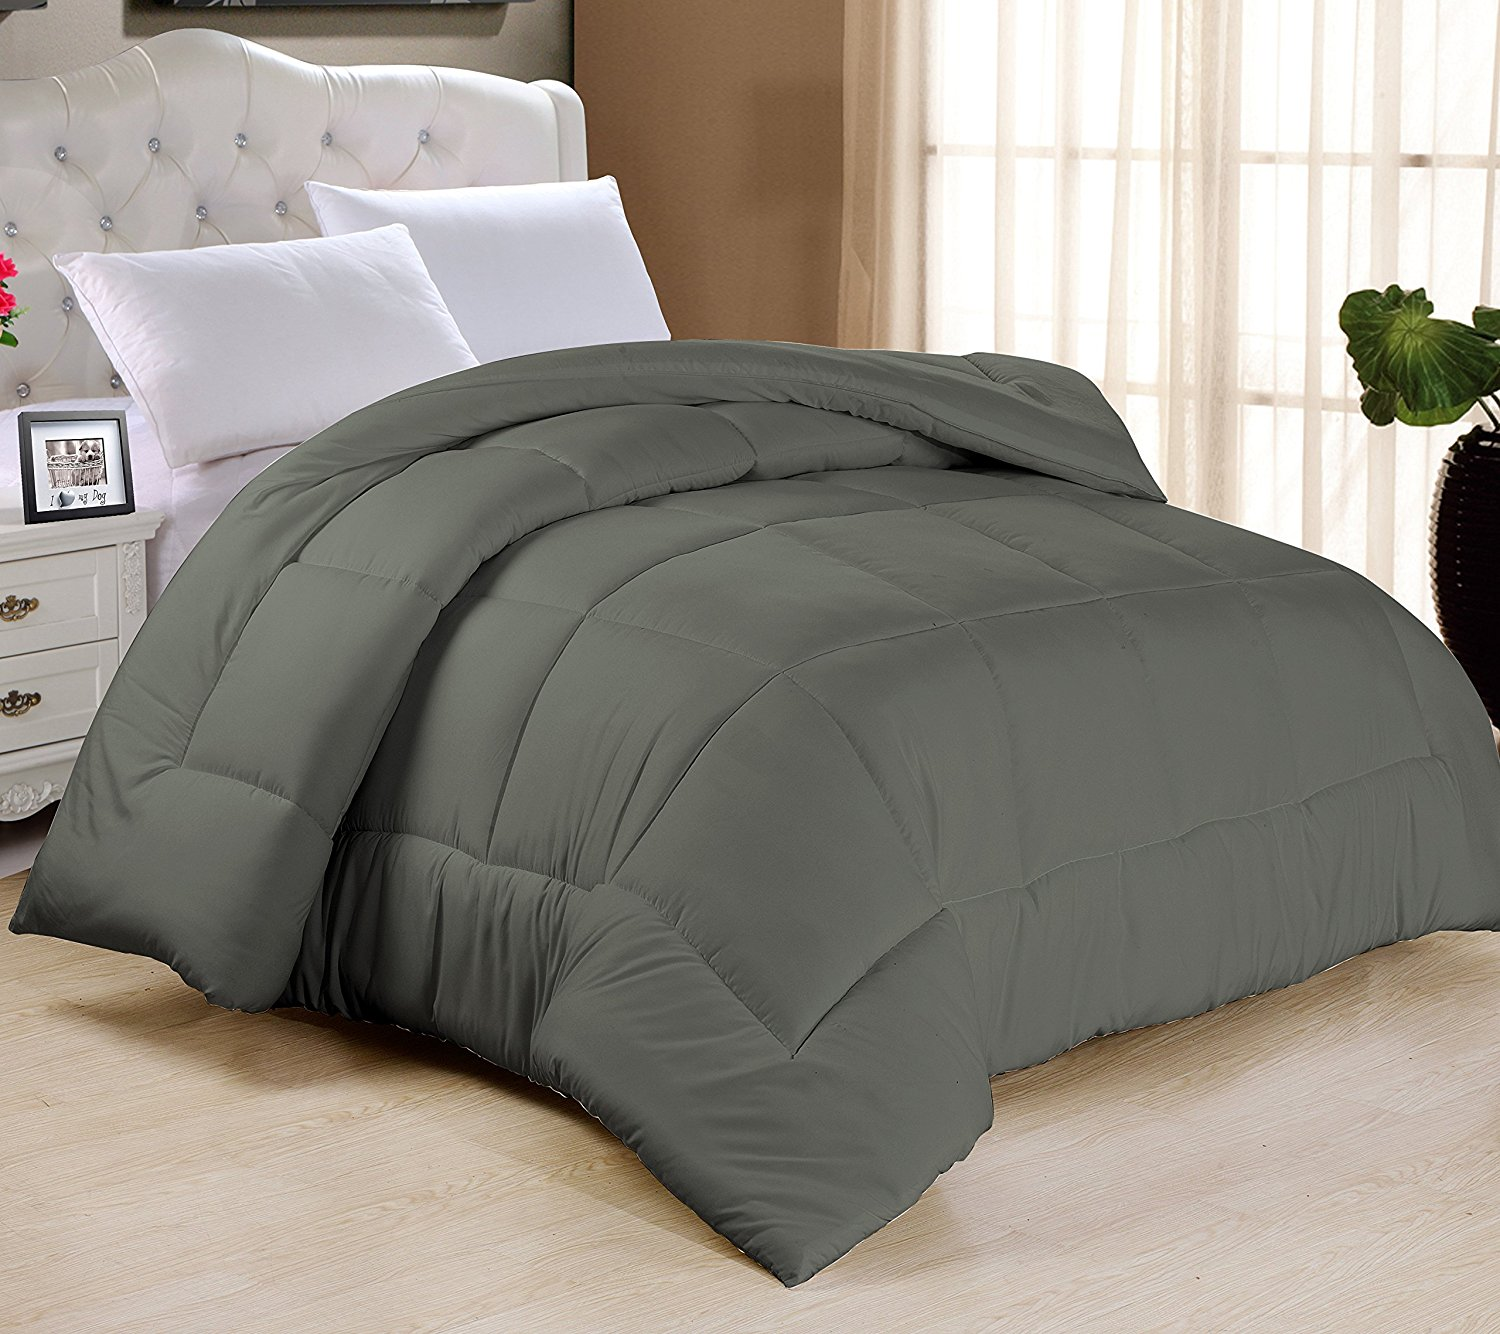 comforters for winter best goose down comforter reviews. Black Bedroom Furniture Sets. Home Design Ideas